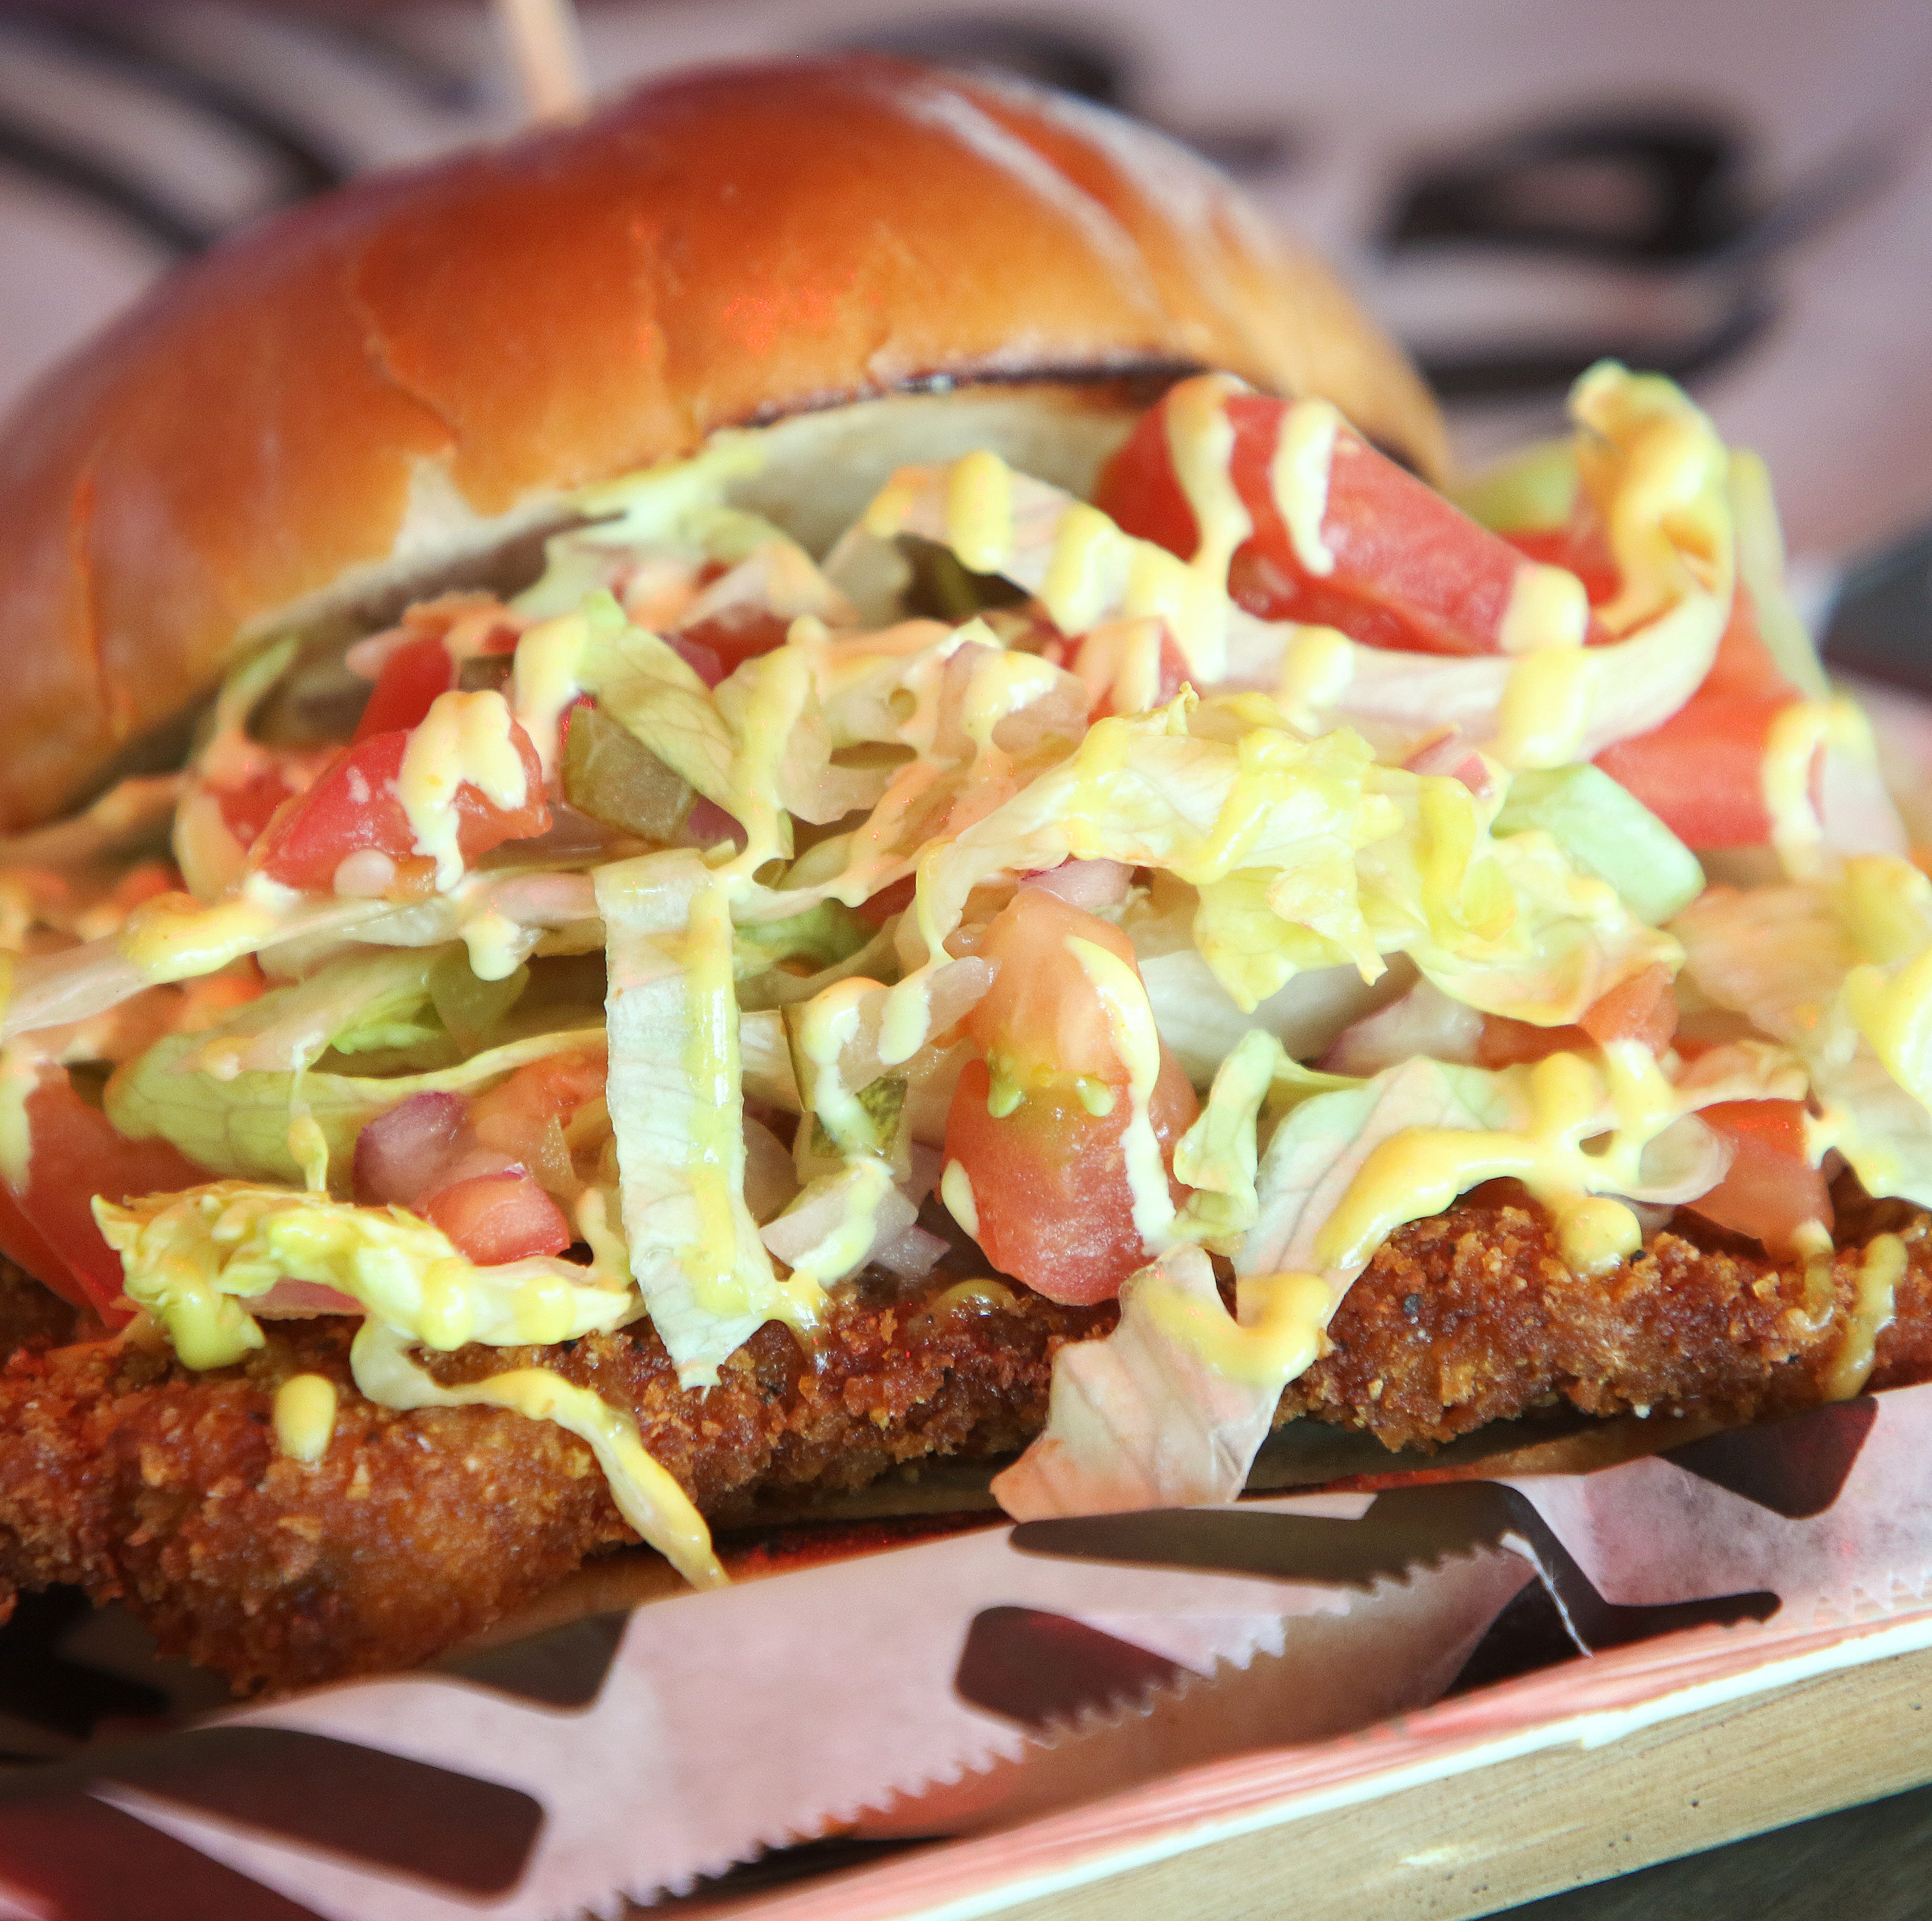 GABP turns up the heat with new menu